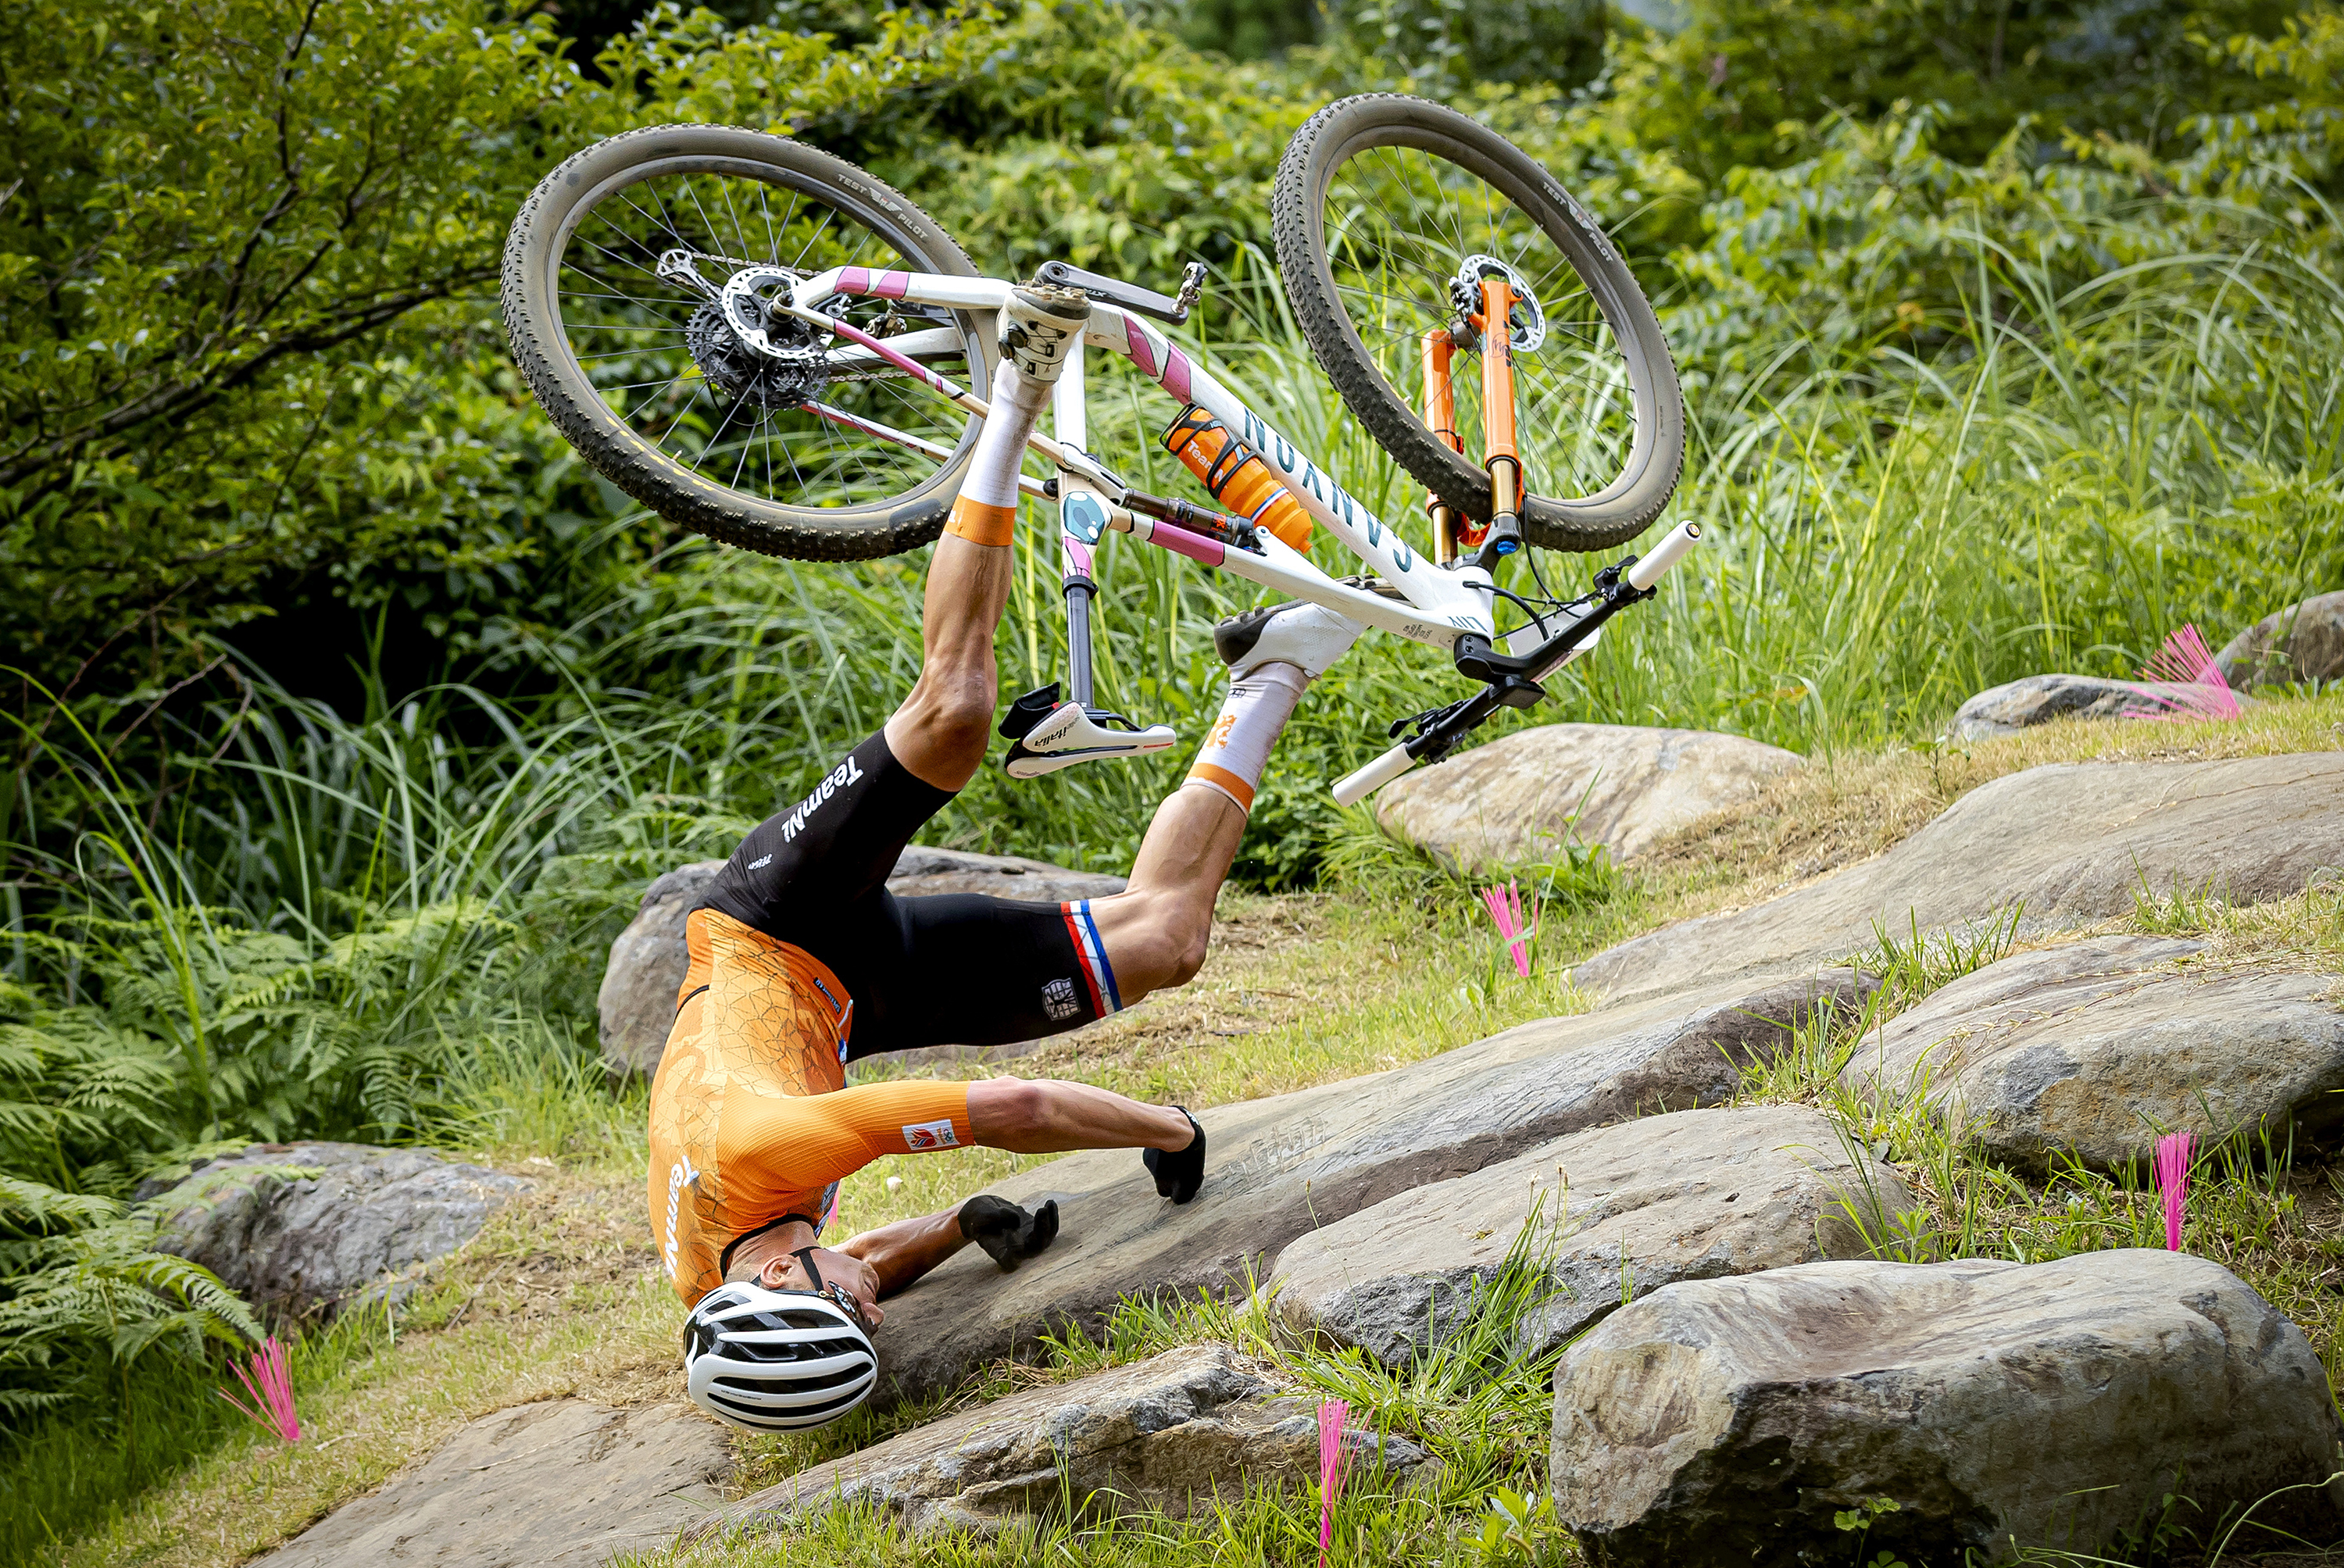 Mathieu van der Poel falls during the cross country mountain bike competition on Tuesday.